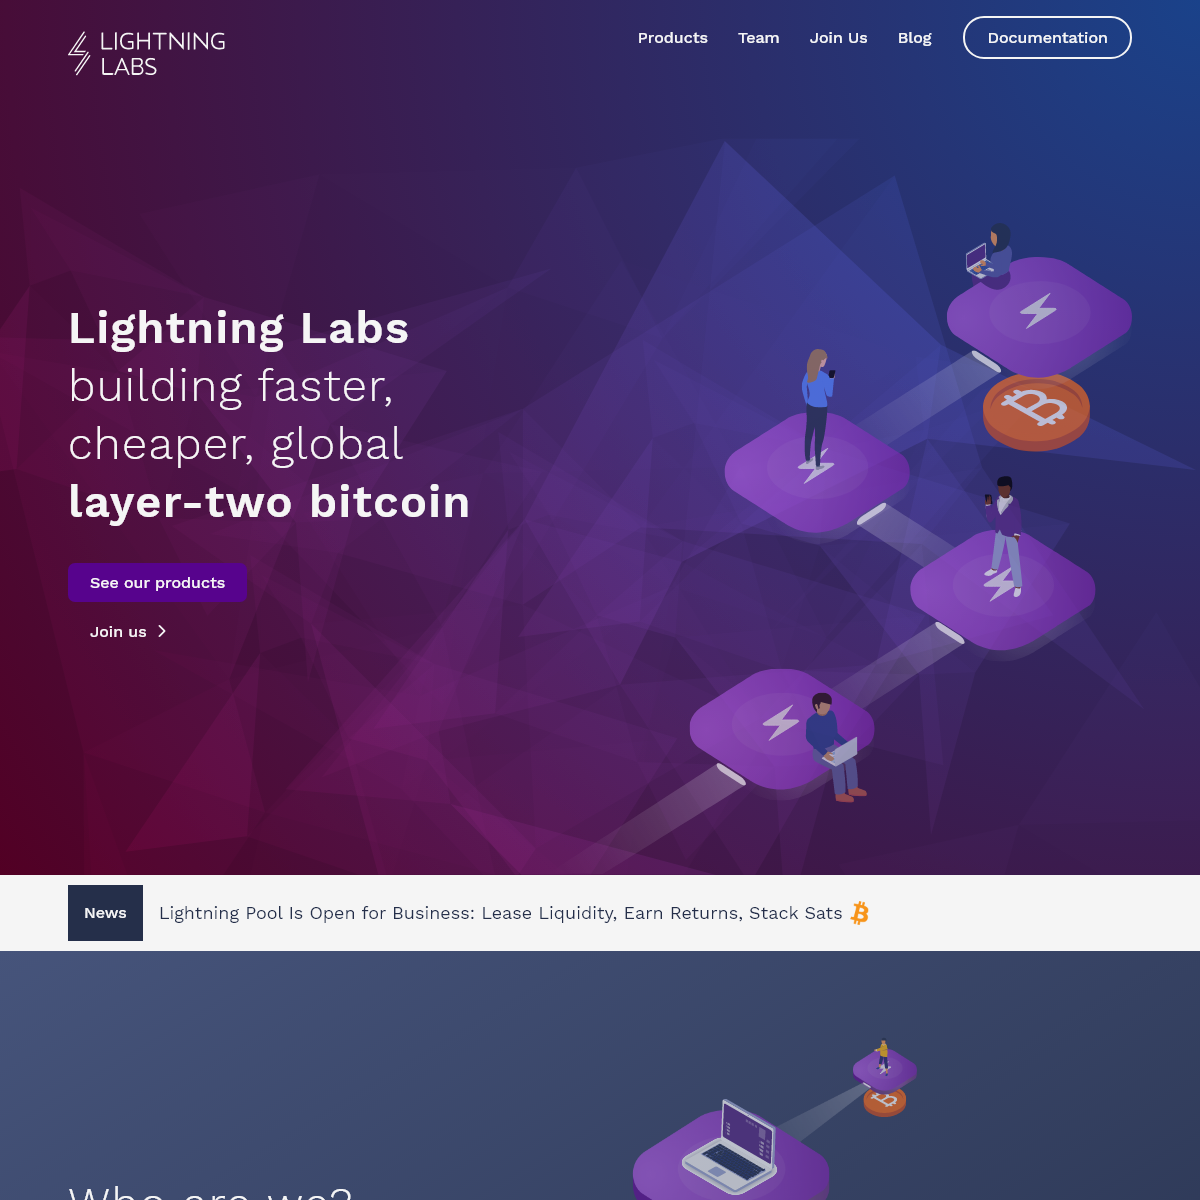 Lightning Labs - faster, cheaper, global layer two bitcoin - Lightning Labs